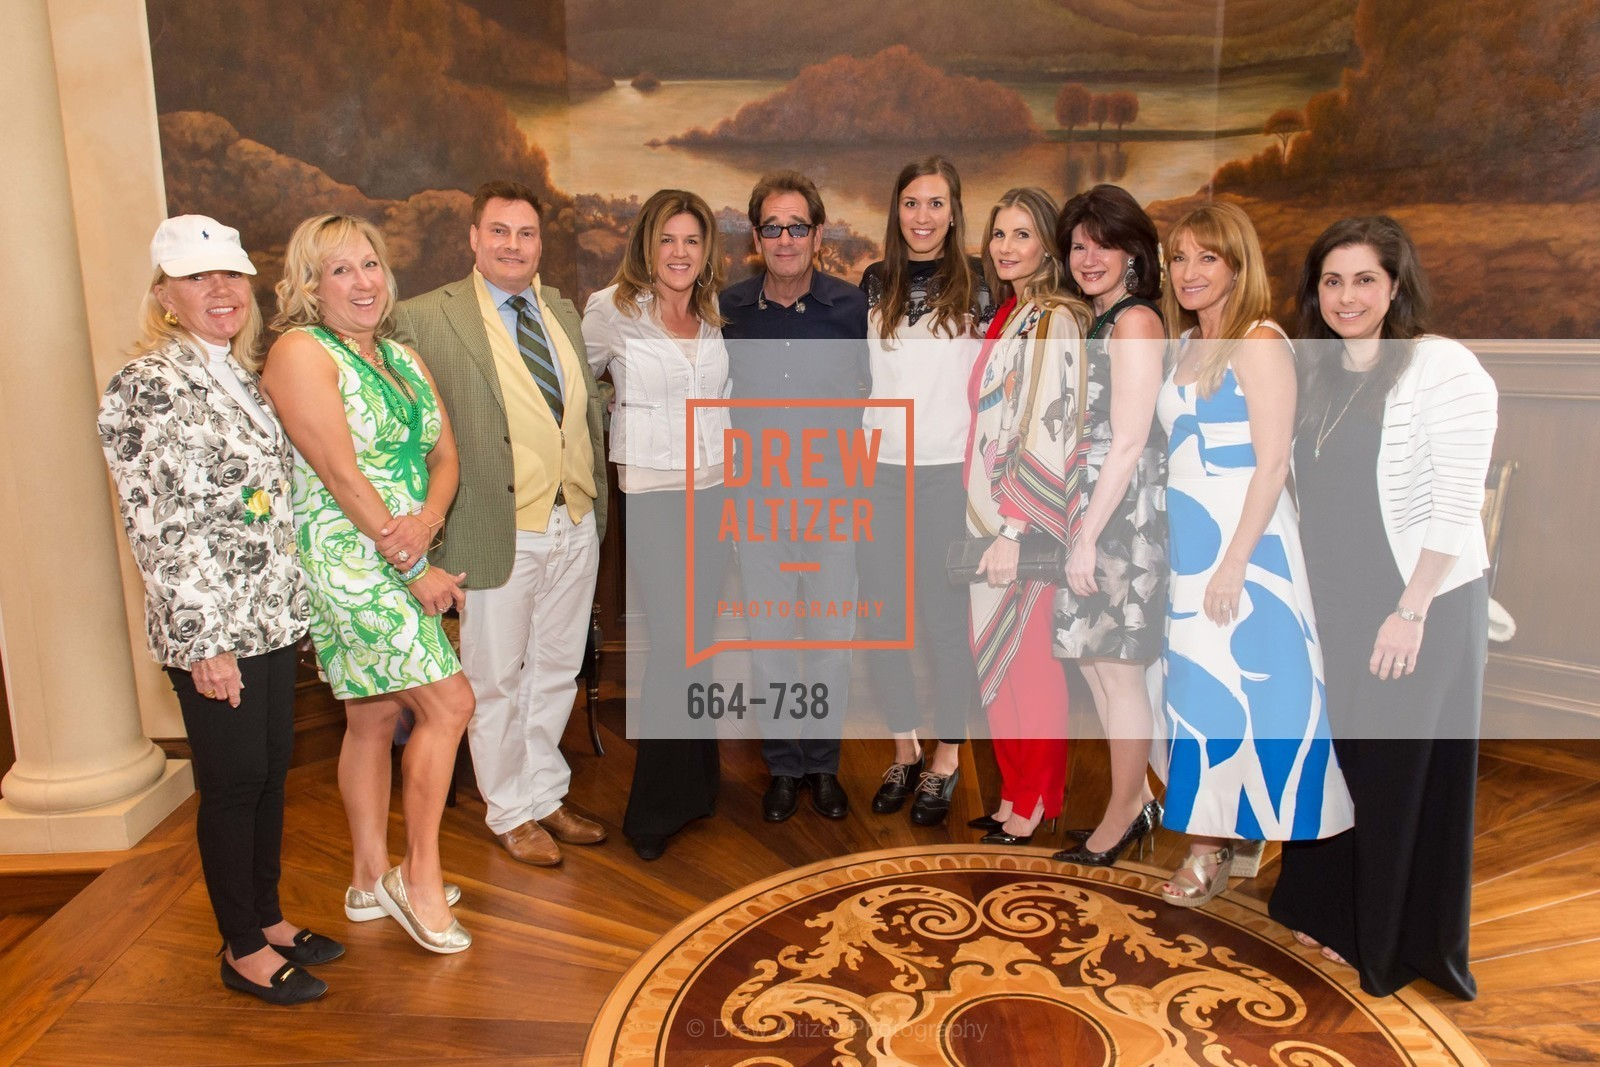 Elsie Floriani, Princess Julia Shaw, Huey Lewis, Elaine Mellis, Jane Seymour, LymeAid 2015, US, May 17th, 2015,Drew Altizer, Drew Altizer Photography, full-service agency, private events, San Francisco photographer, photographer california